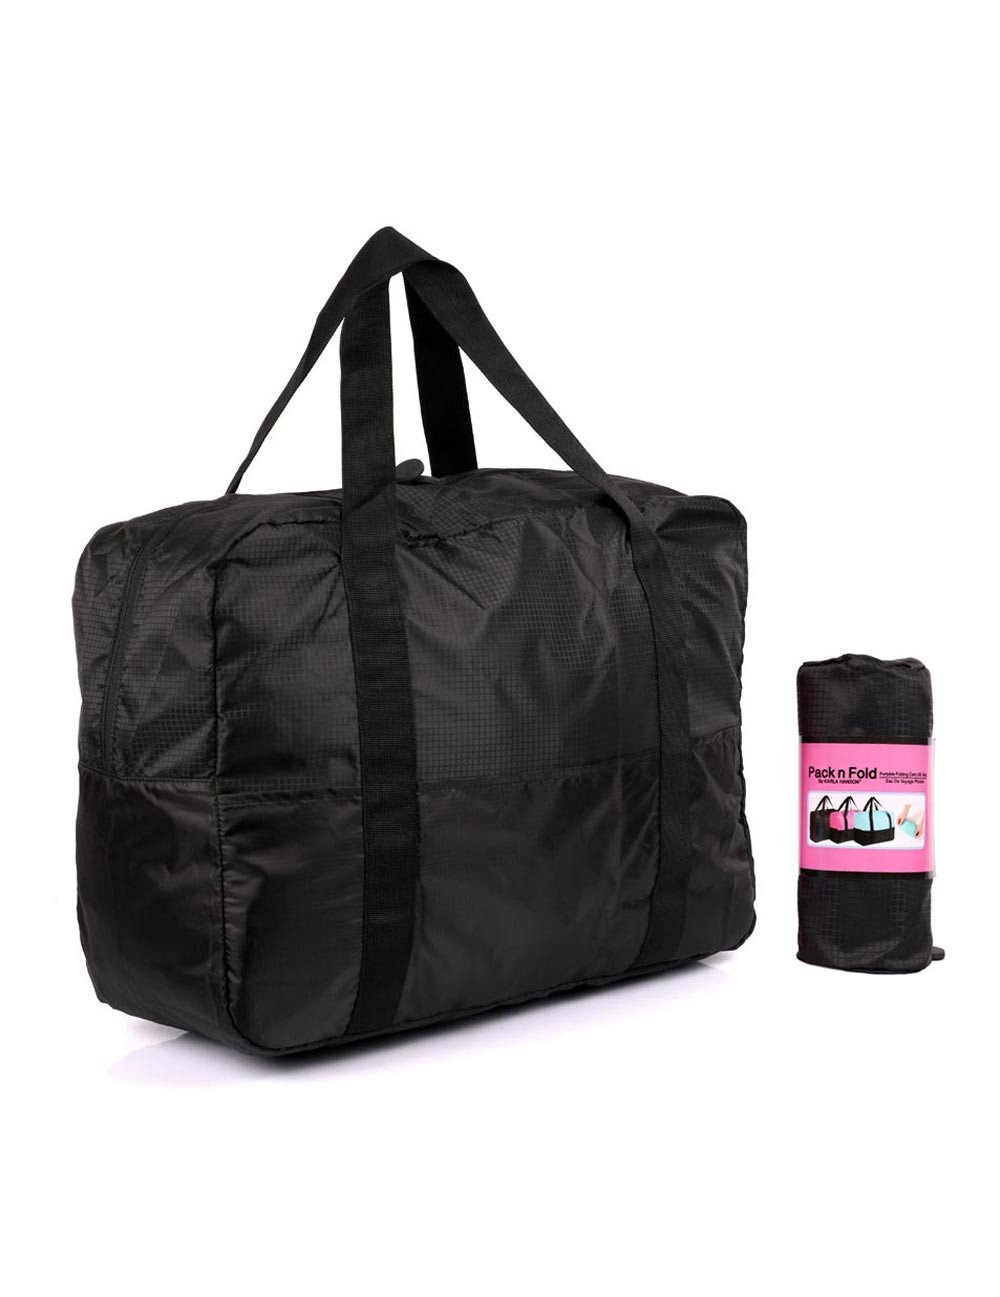 Pack and Fold Duffle Bag